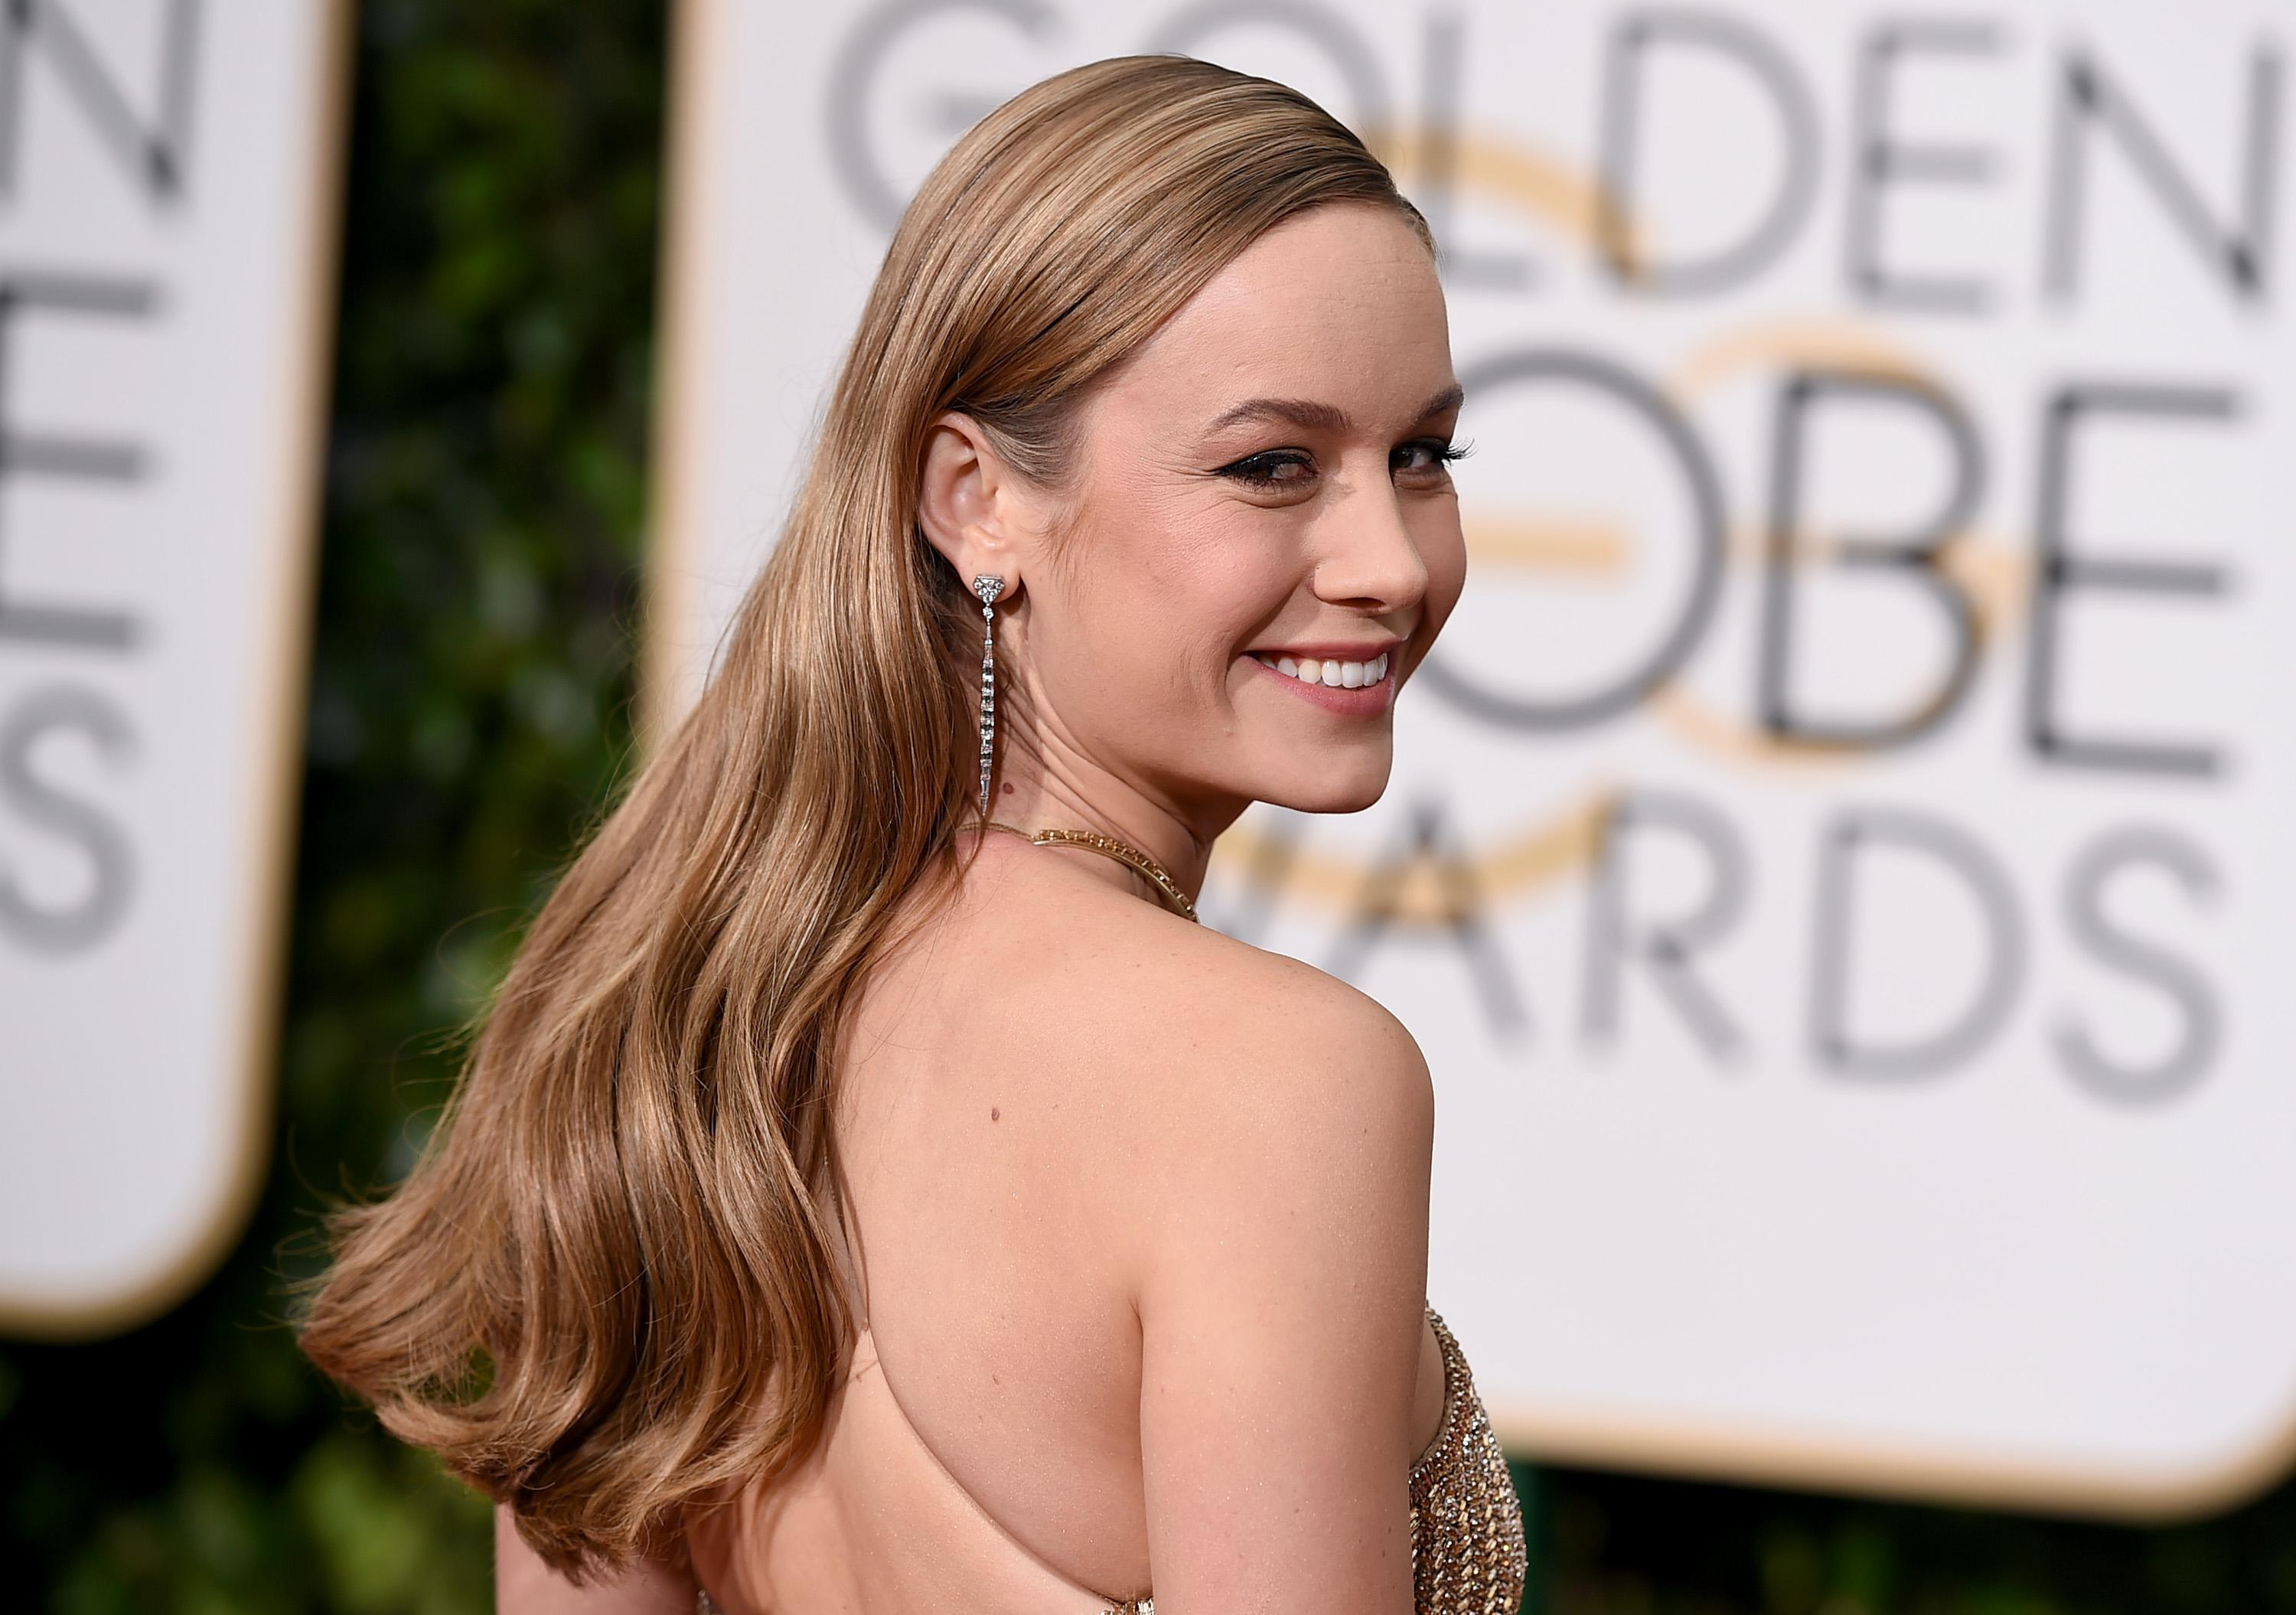 83605088 in addition Lace moreover Movie Night as well Oscar Invitation Templates moreover Brie Larson Wins Best Actress At The 2016 Golden Globe Awards. on oscar award card